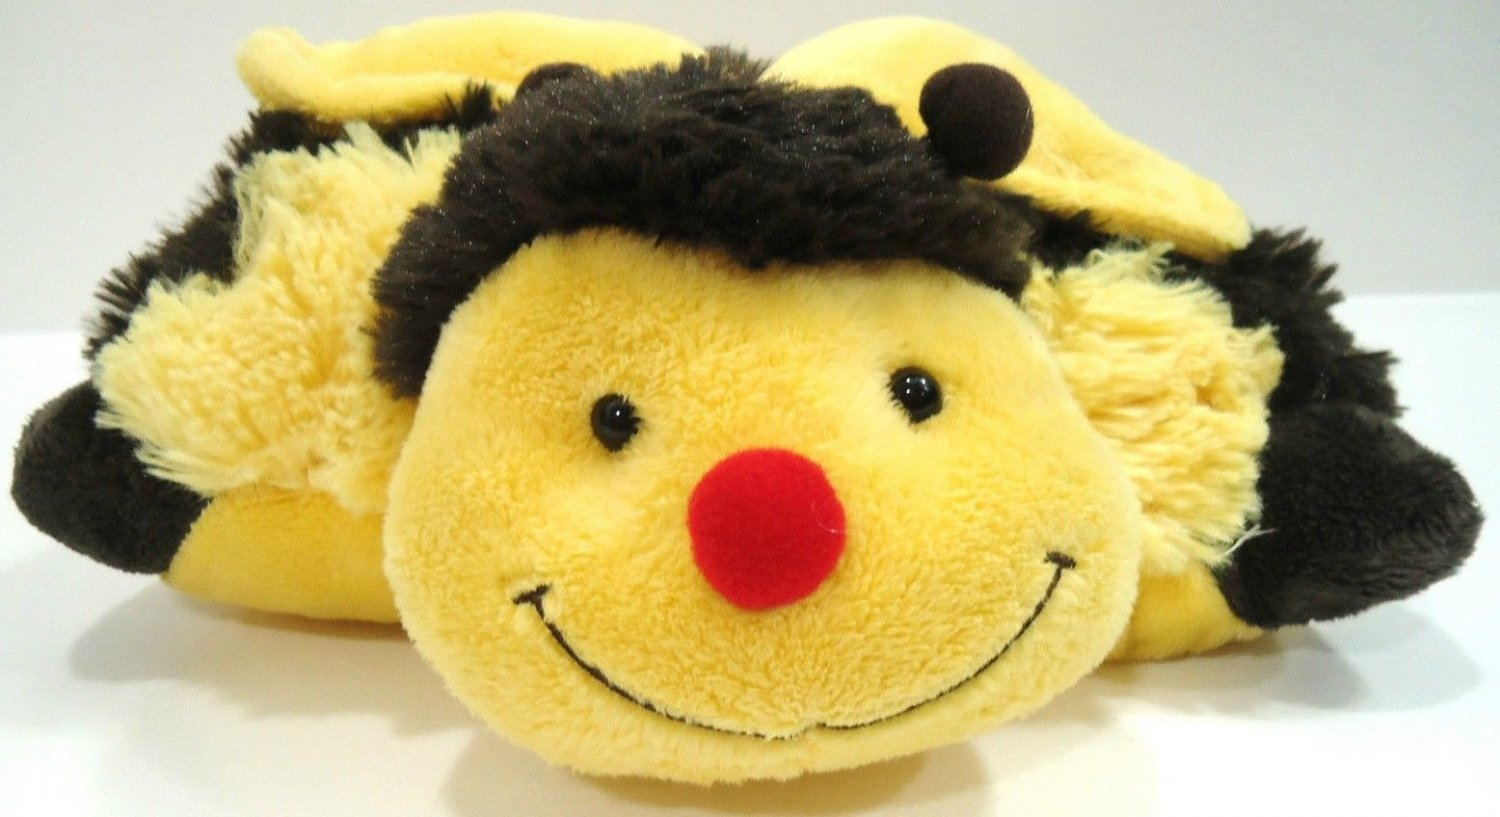 PILLOW PETS - PEE WEES - BUMBLY BEE - STUFFED - PLUSH - ANIMAL - BRAND NEW